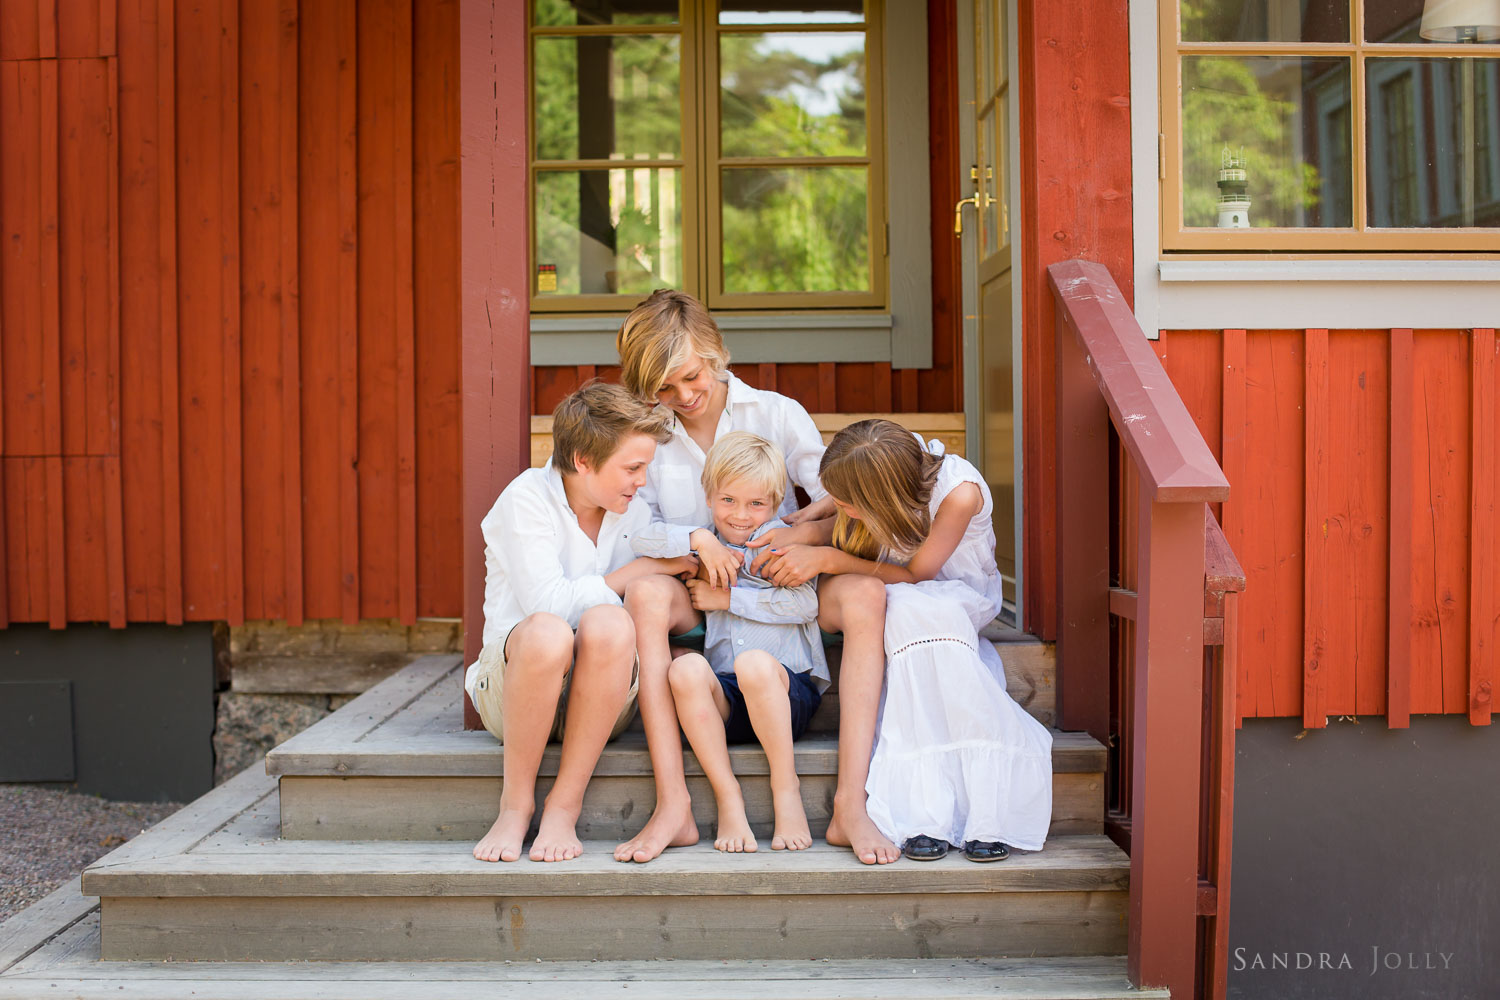 family-at-summer-house-in-Sweden.jpg